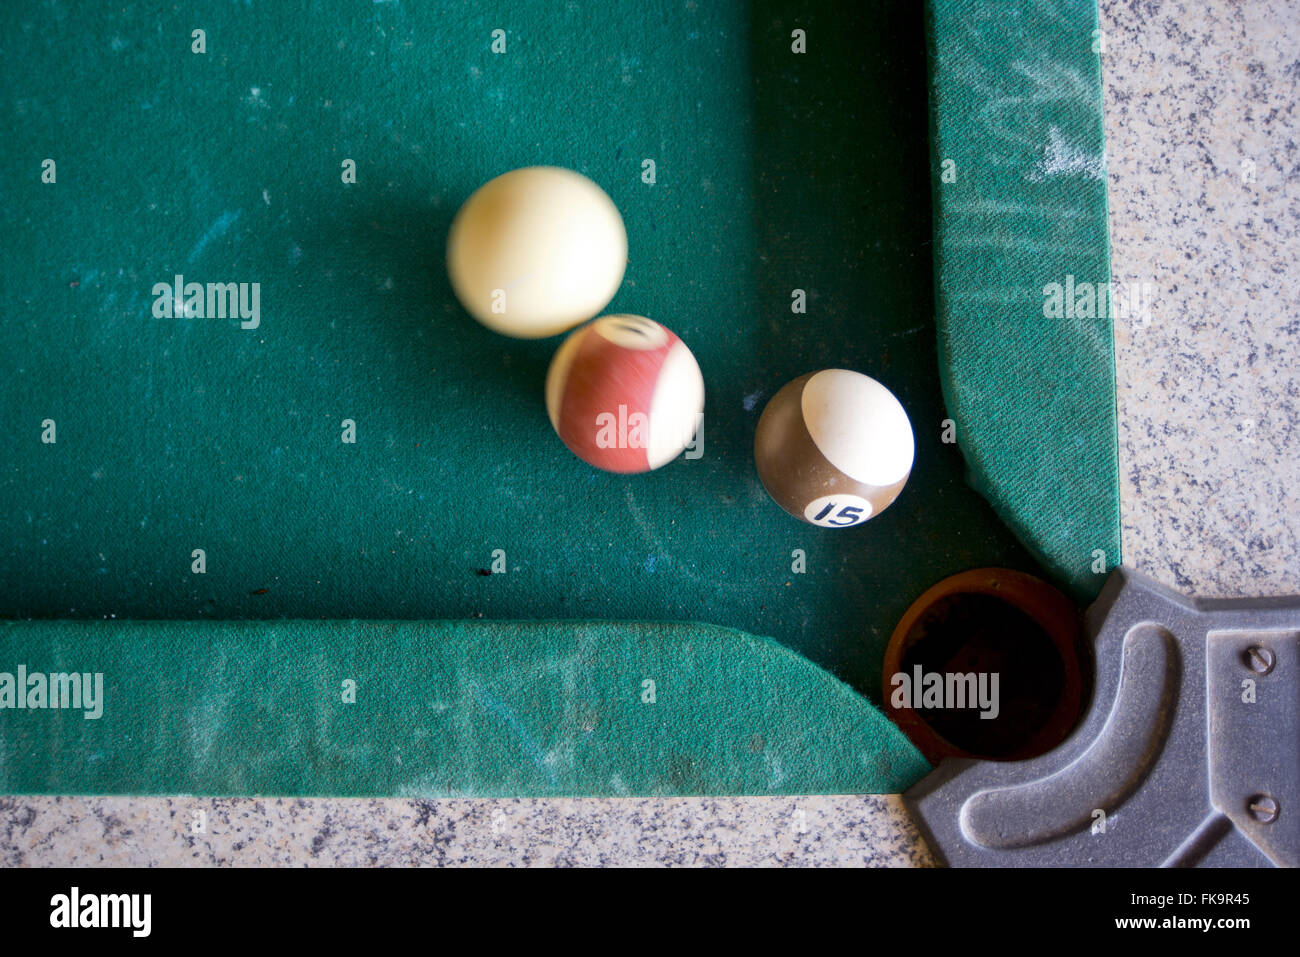 Snooker game at a bar in the Amazon region - Stock Image